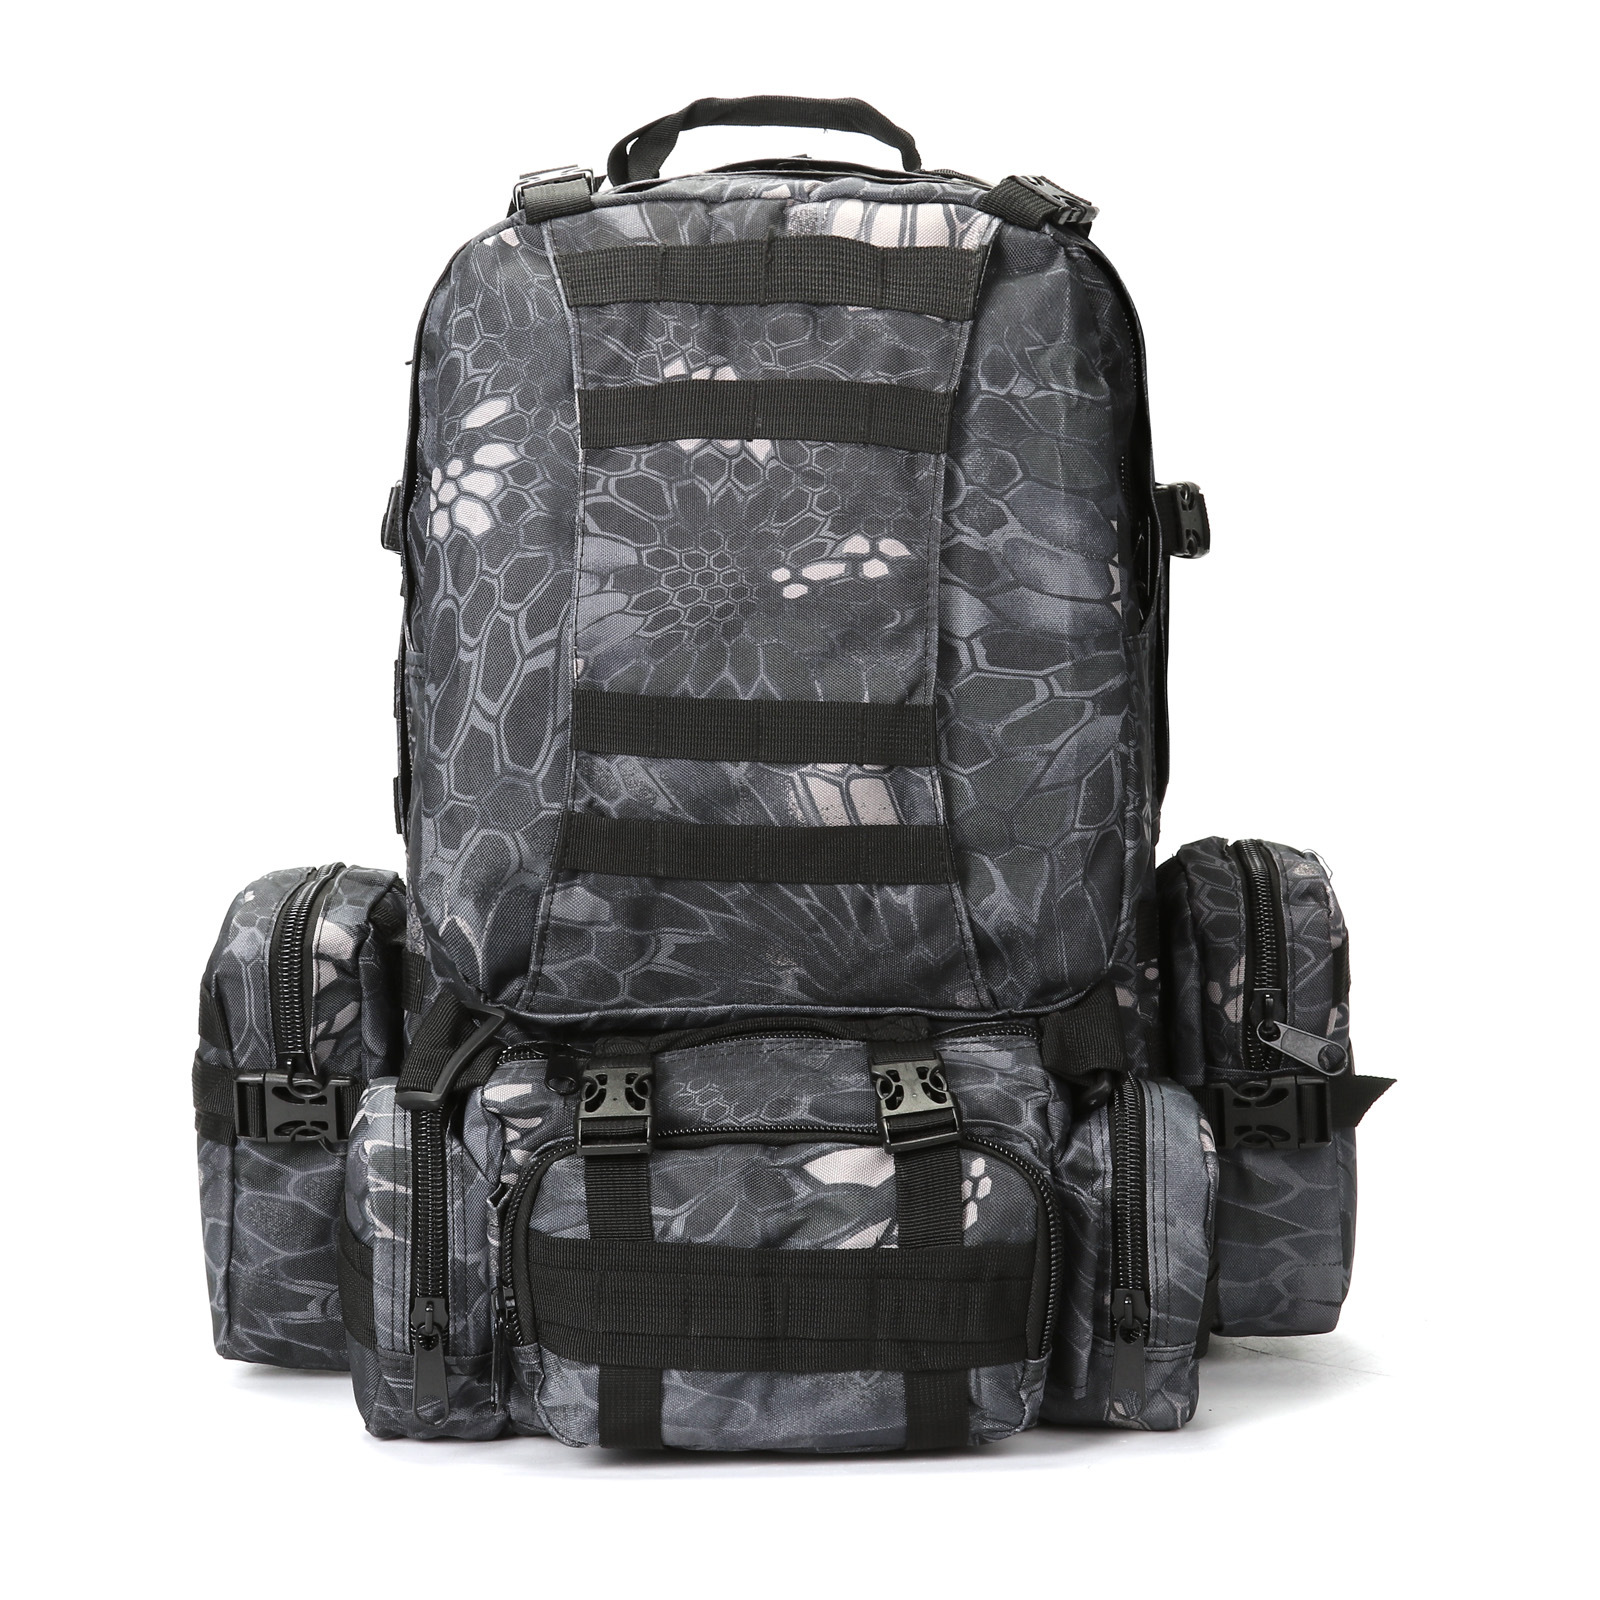 Outdoor Multi-functional Combination Backpack Men And Women Army Fans Tactical Backpack Outdoor Sports Hiking Mountaineering Bag